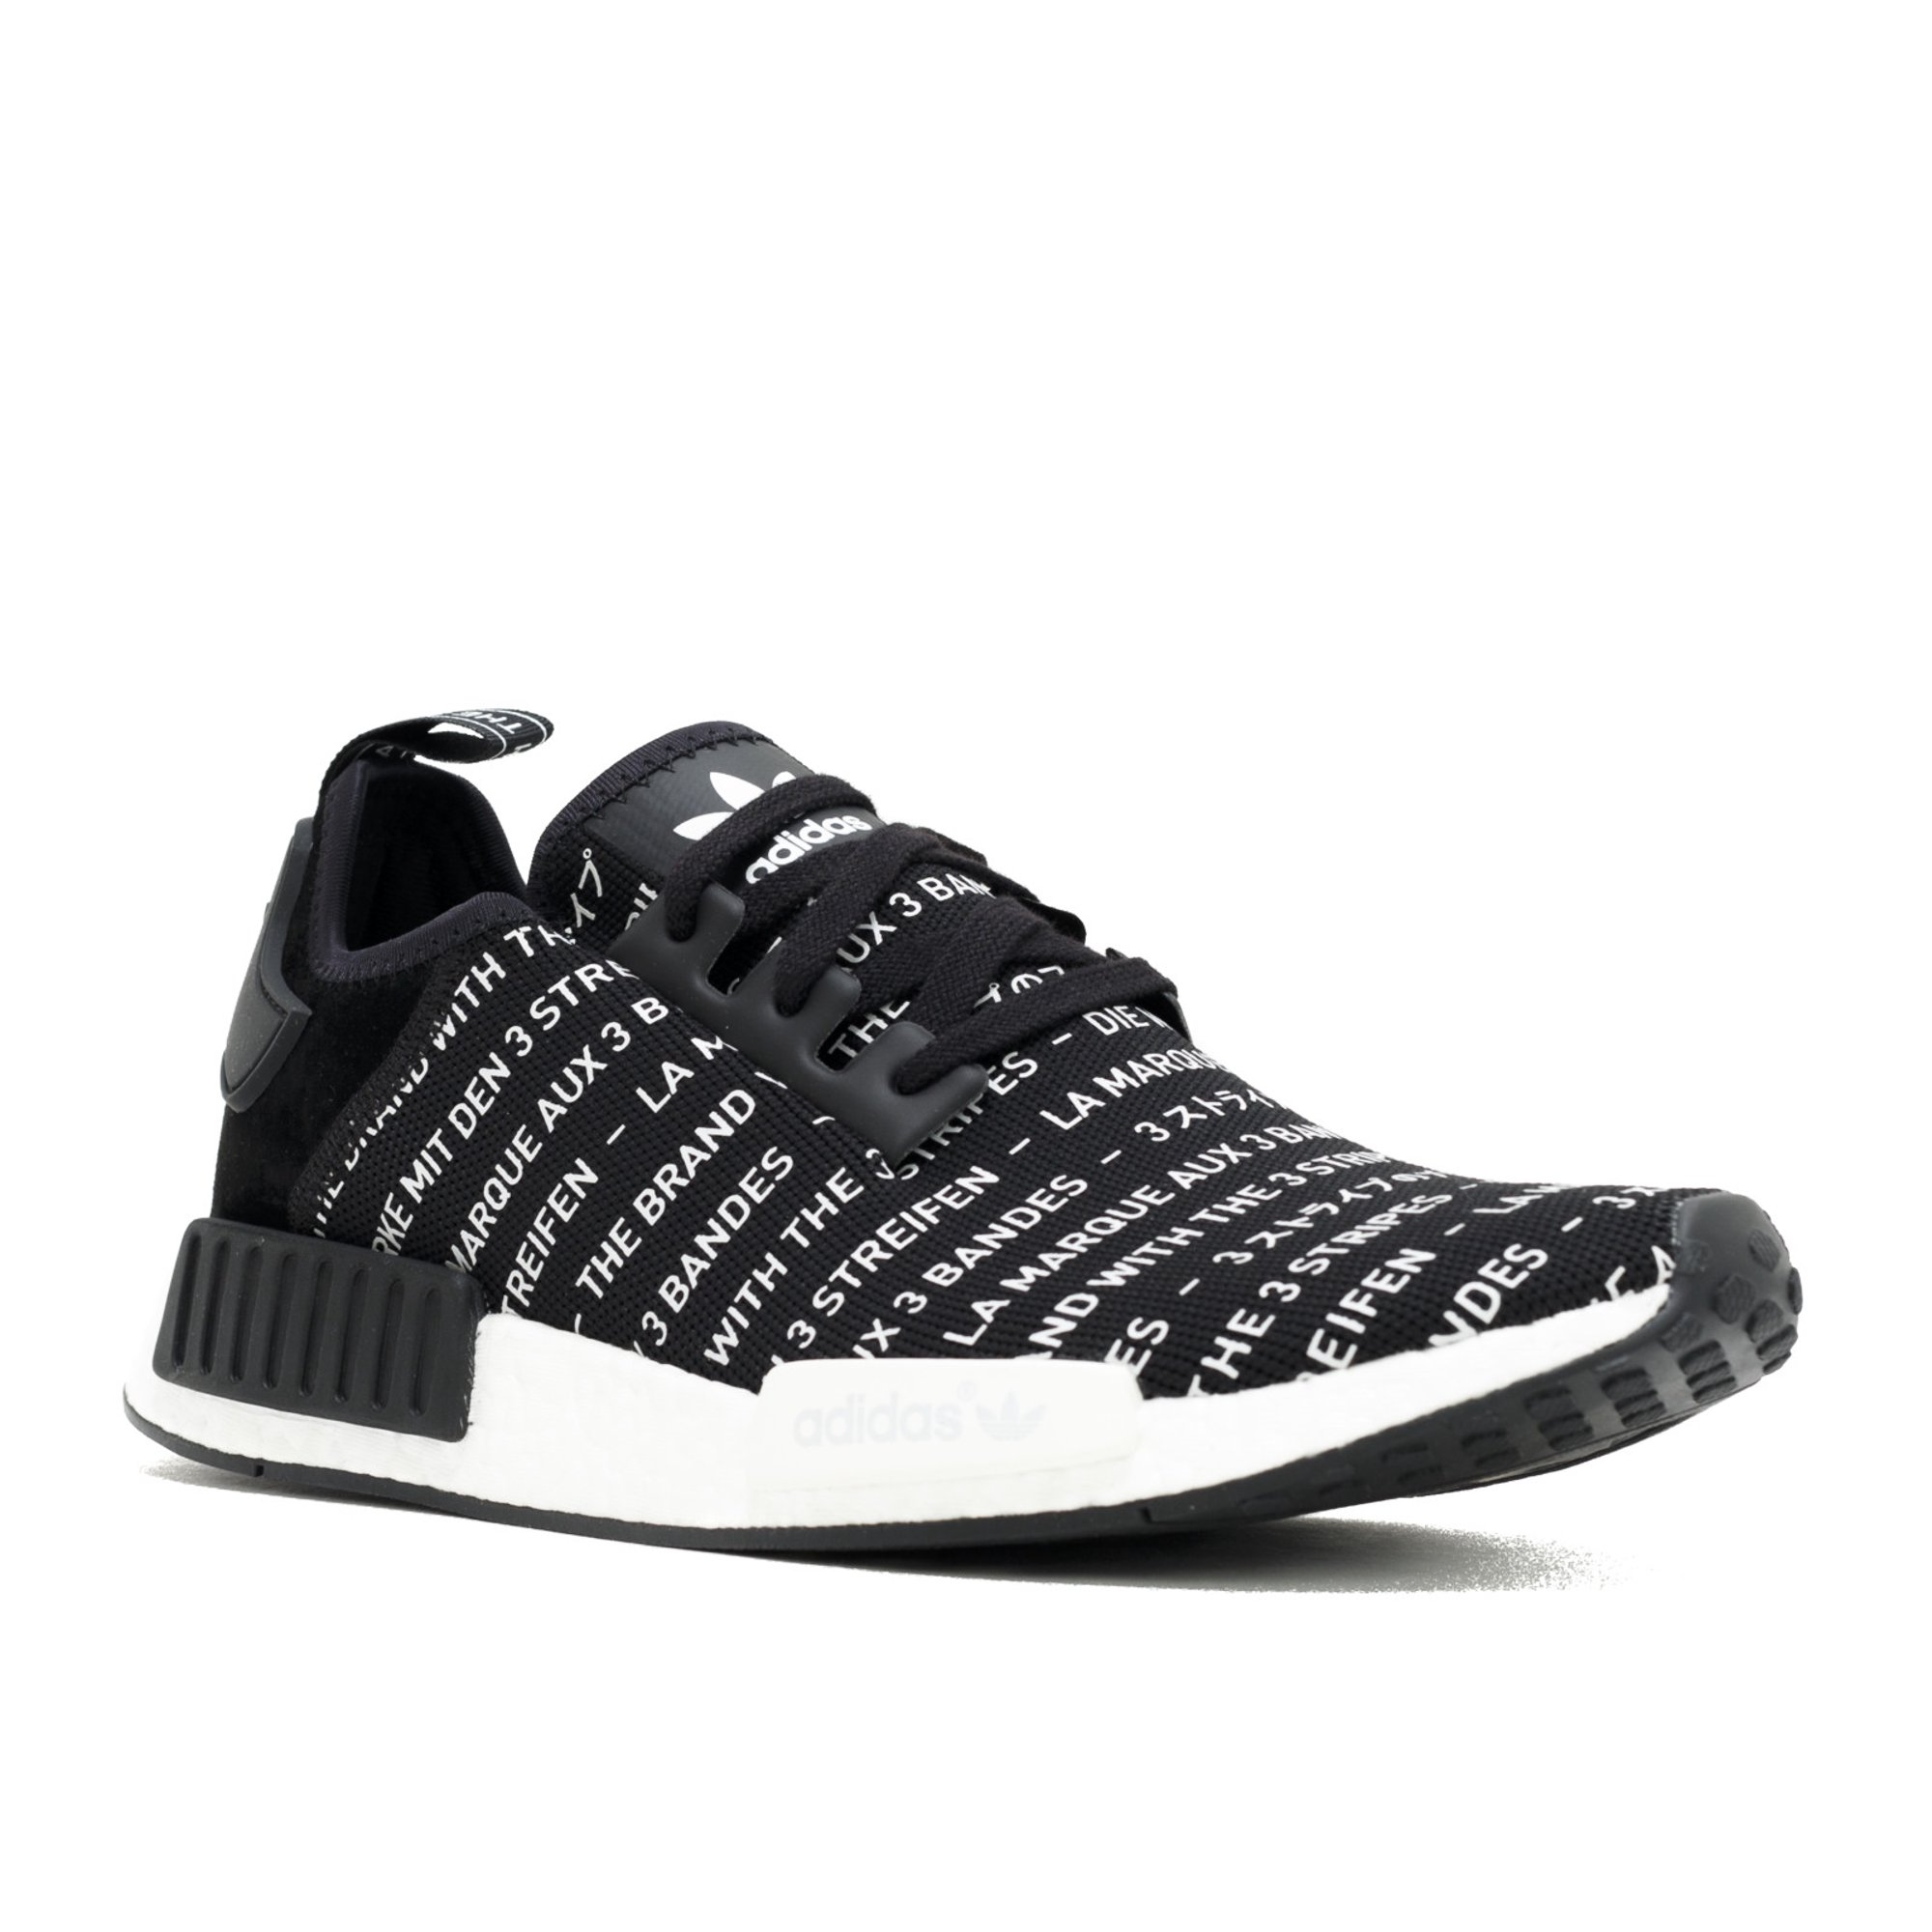 new concept 3111a 7eca9 Adidas - Men - Nmd R1 'Three Stripes' - S76519 - Size 10 ...